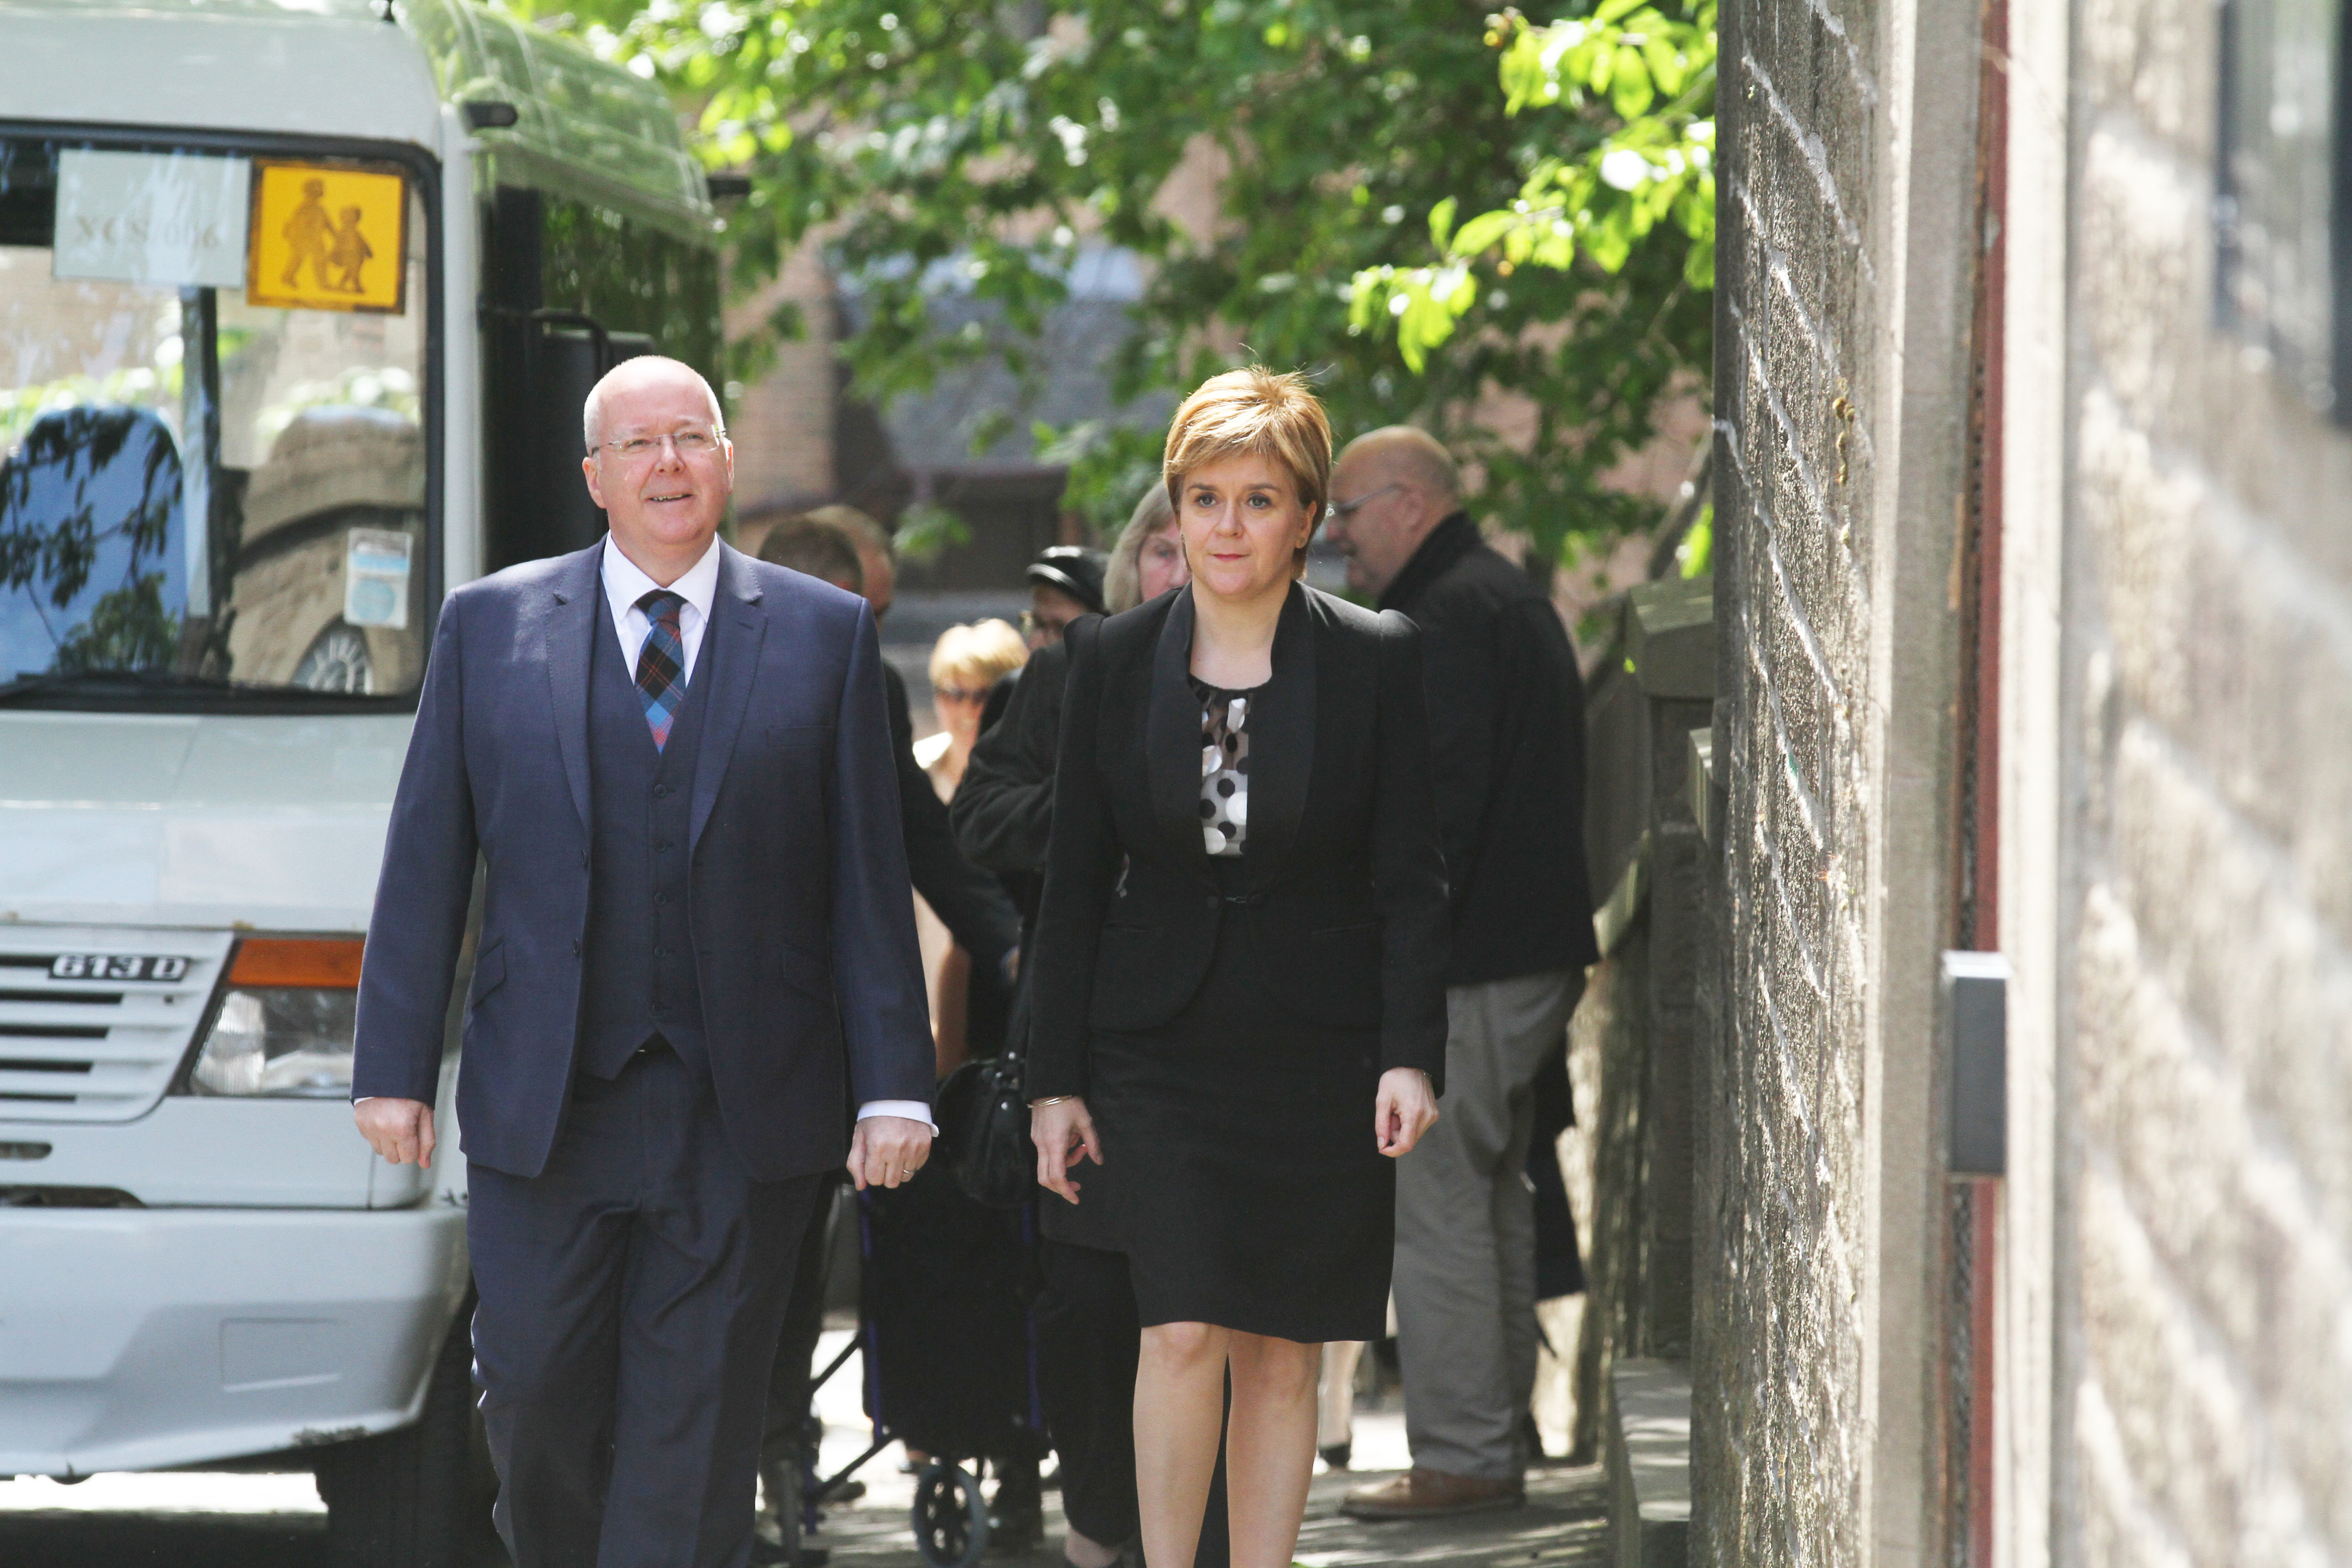 First Minister Nicola Sturgeon and her husband Peter Murrell attend Mr Wilson's funeral at St Peter's Free Church in Dundee.